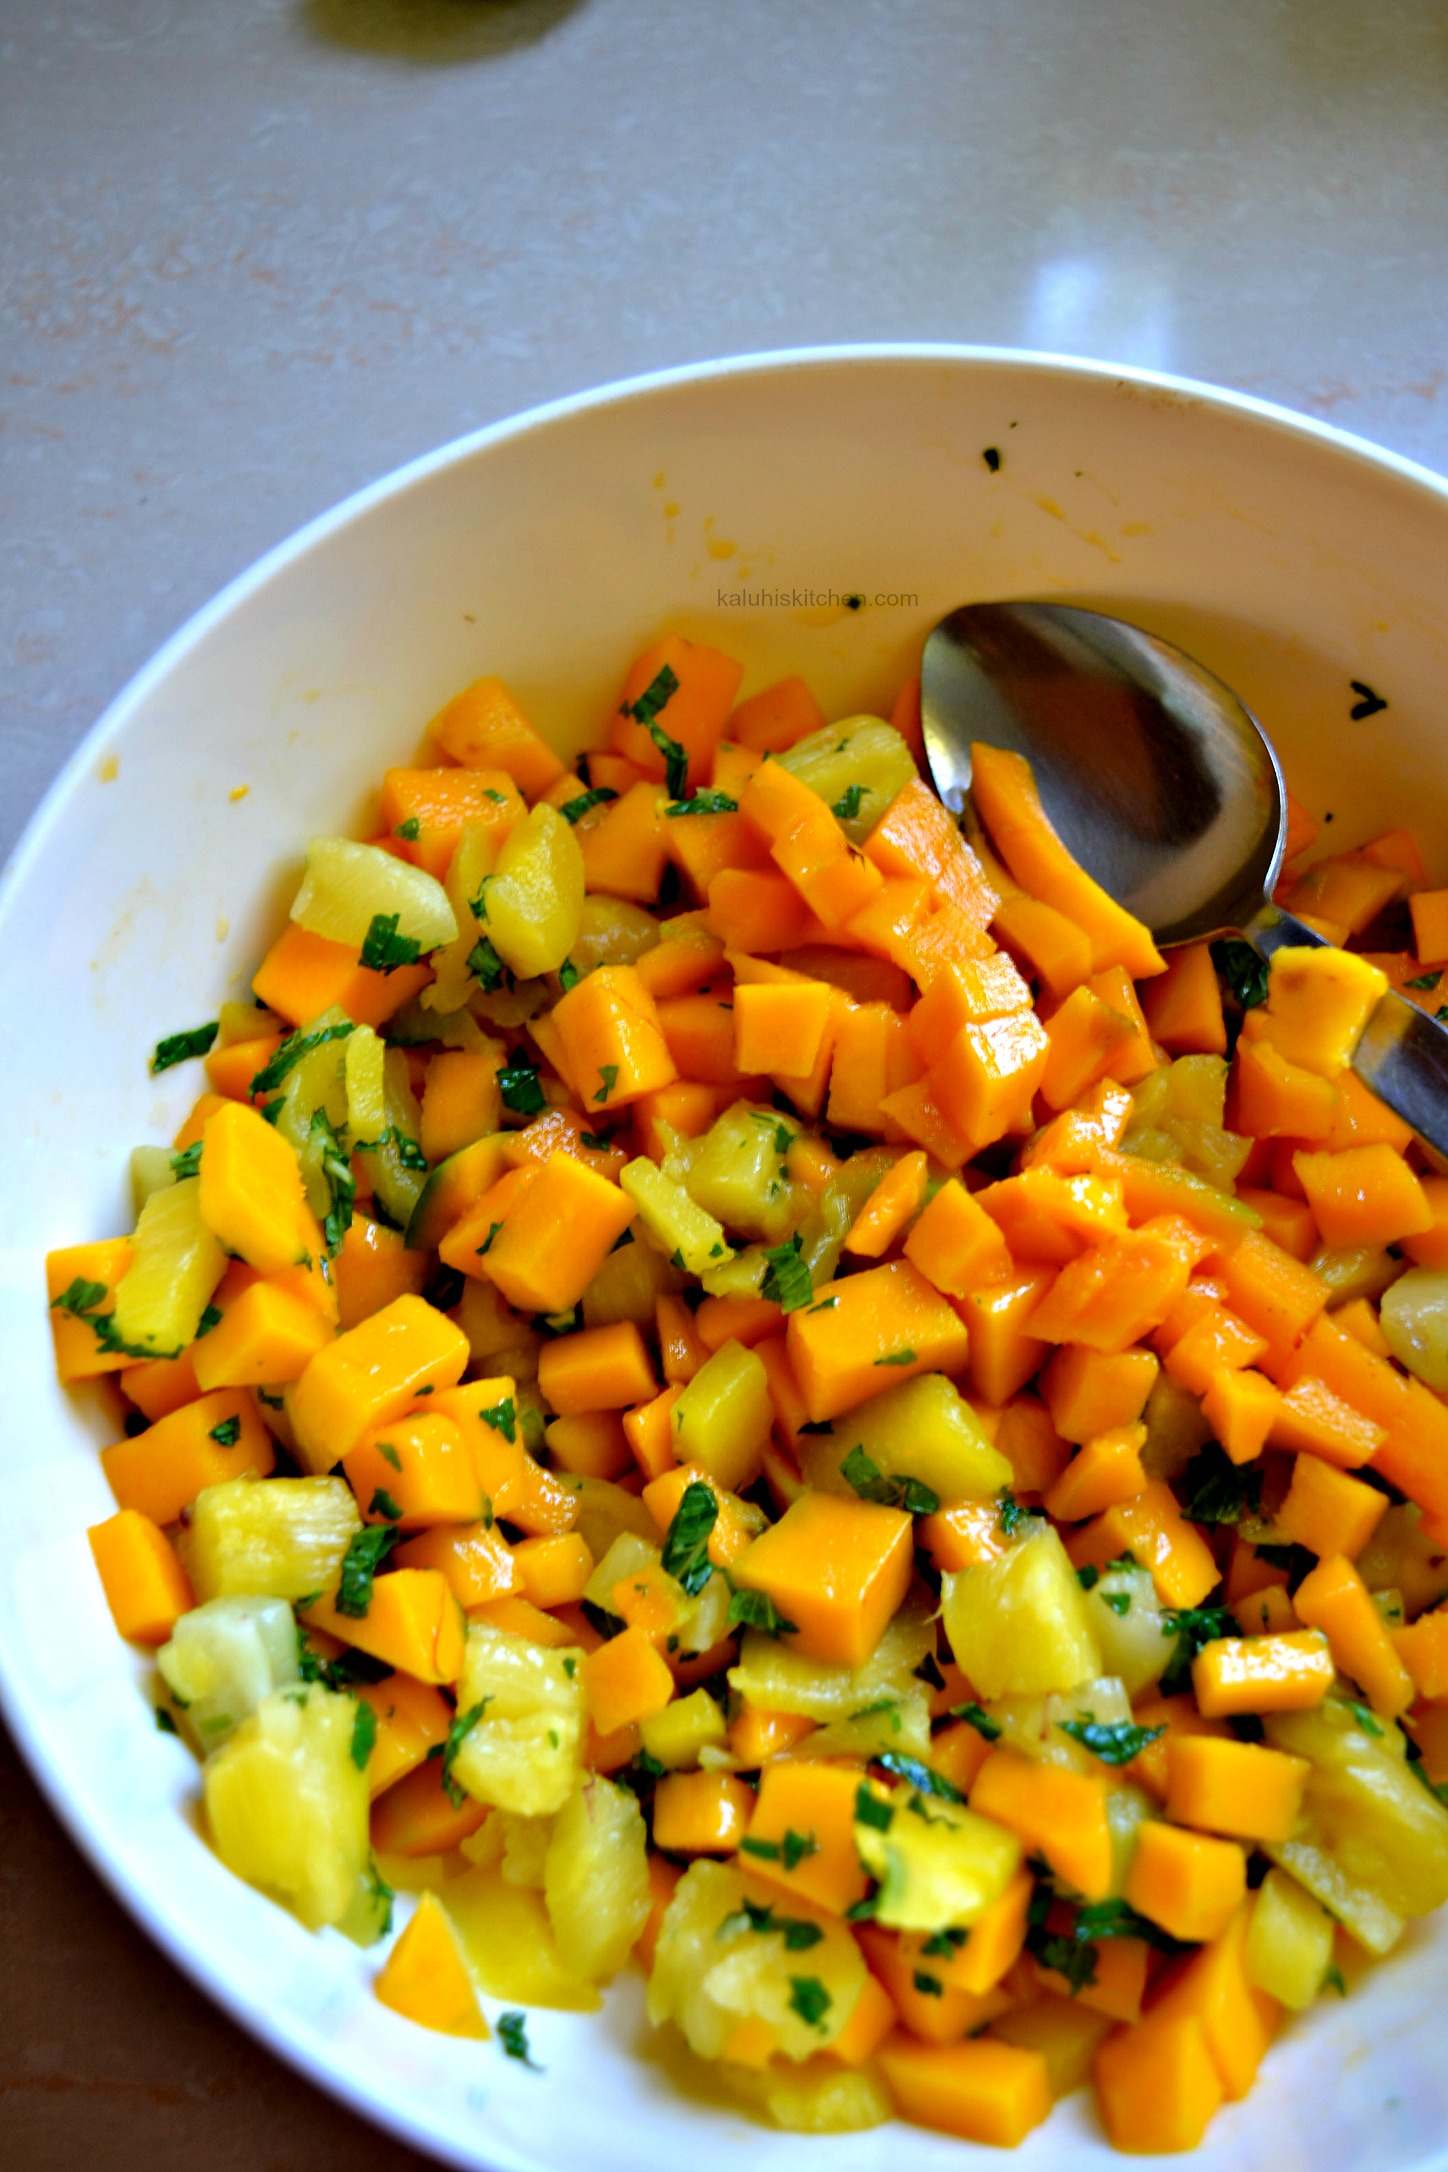 mix all the fruits of your mango mint salad together amd allow it to rest for a few minutes so that all the flavors mix in_kaluhiskitchen.ocm